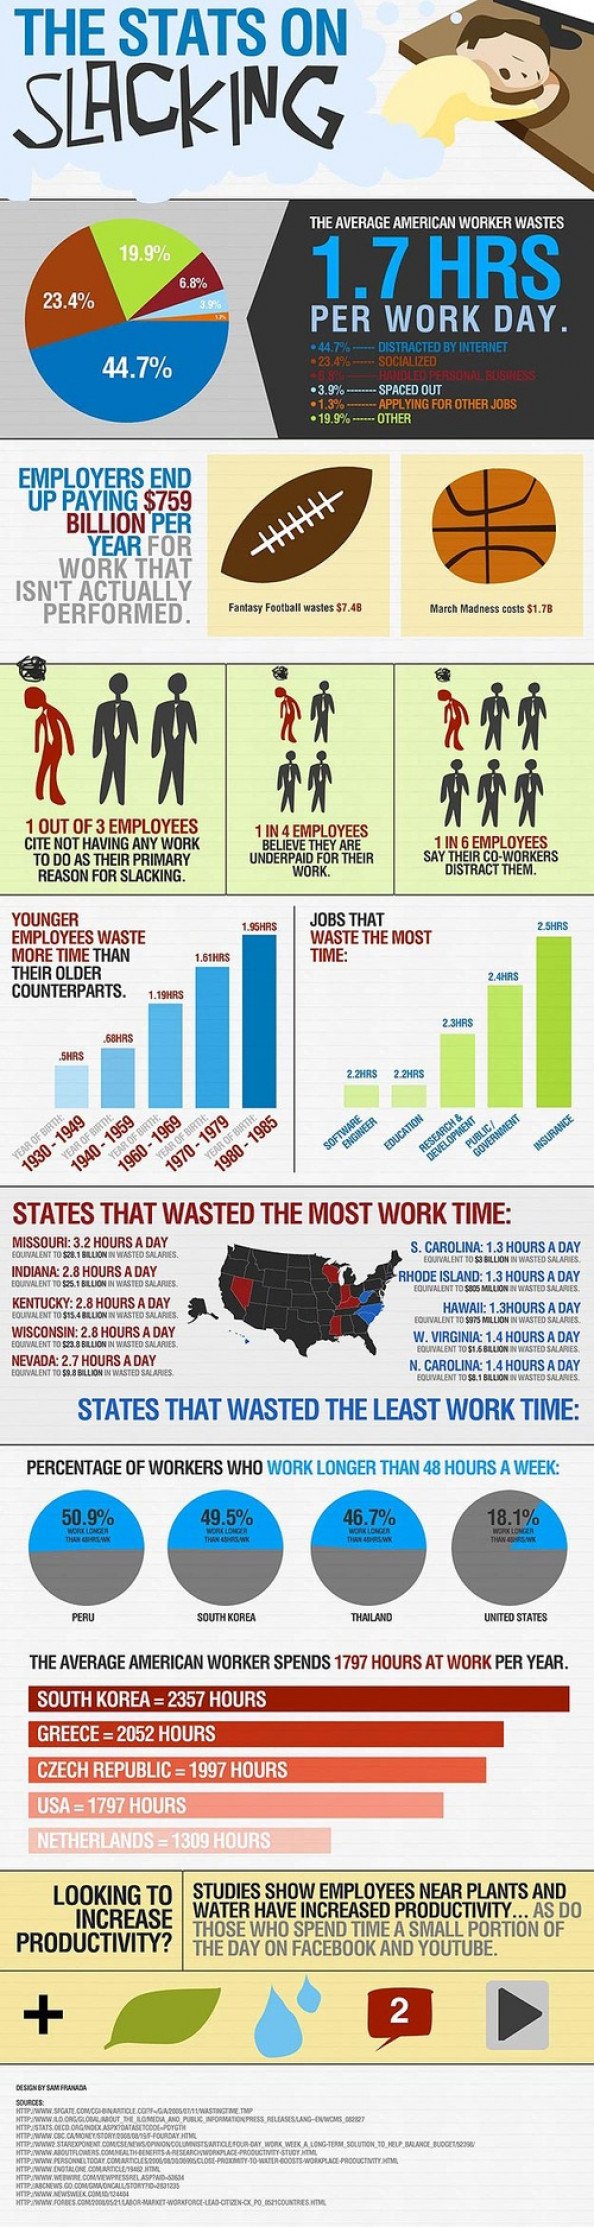 The Stats on Slacking Infographic